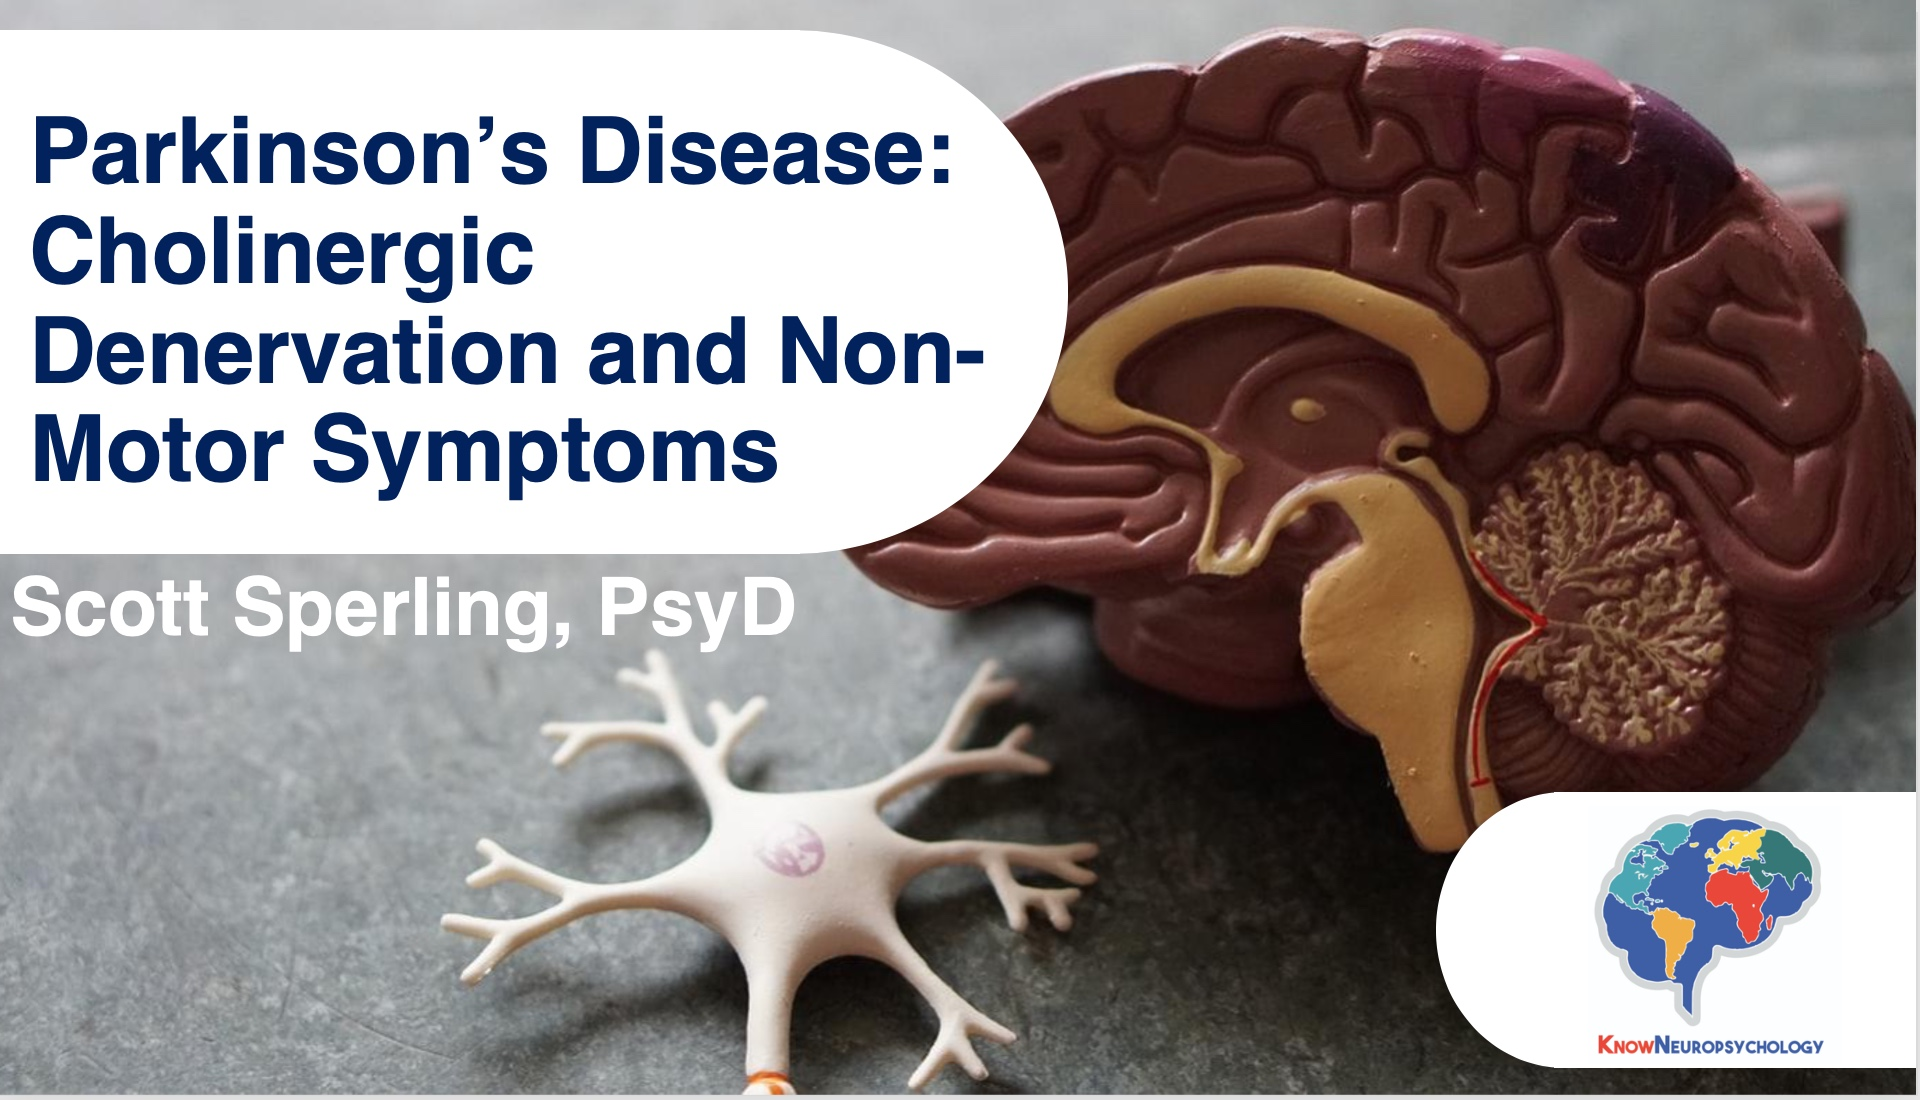 Parkinson's Disease - cholinergic denervation and non-motor symptoms lecture recording